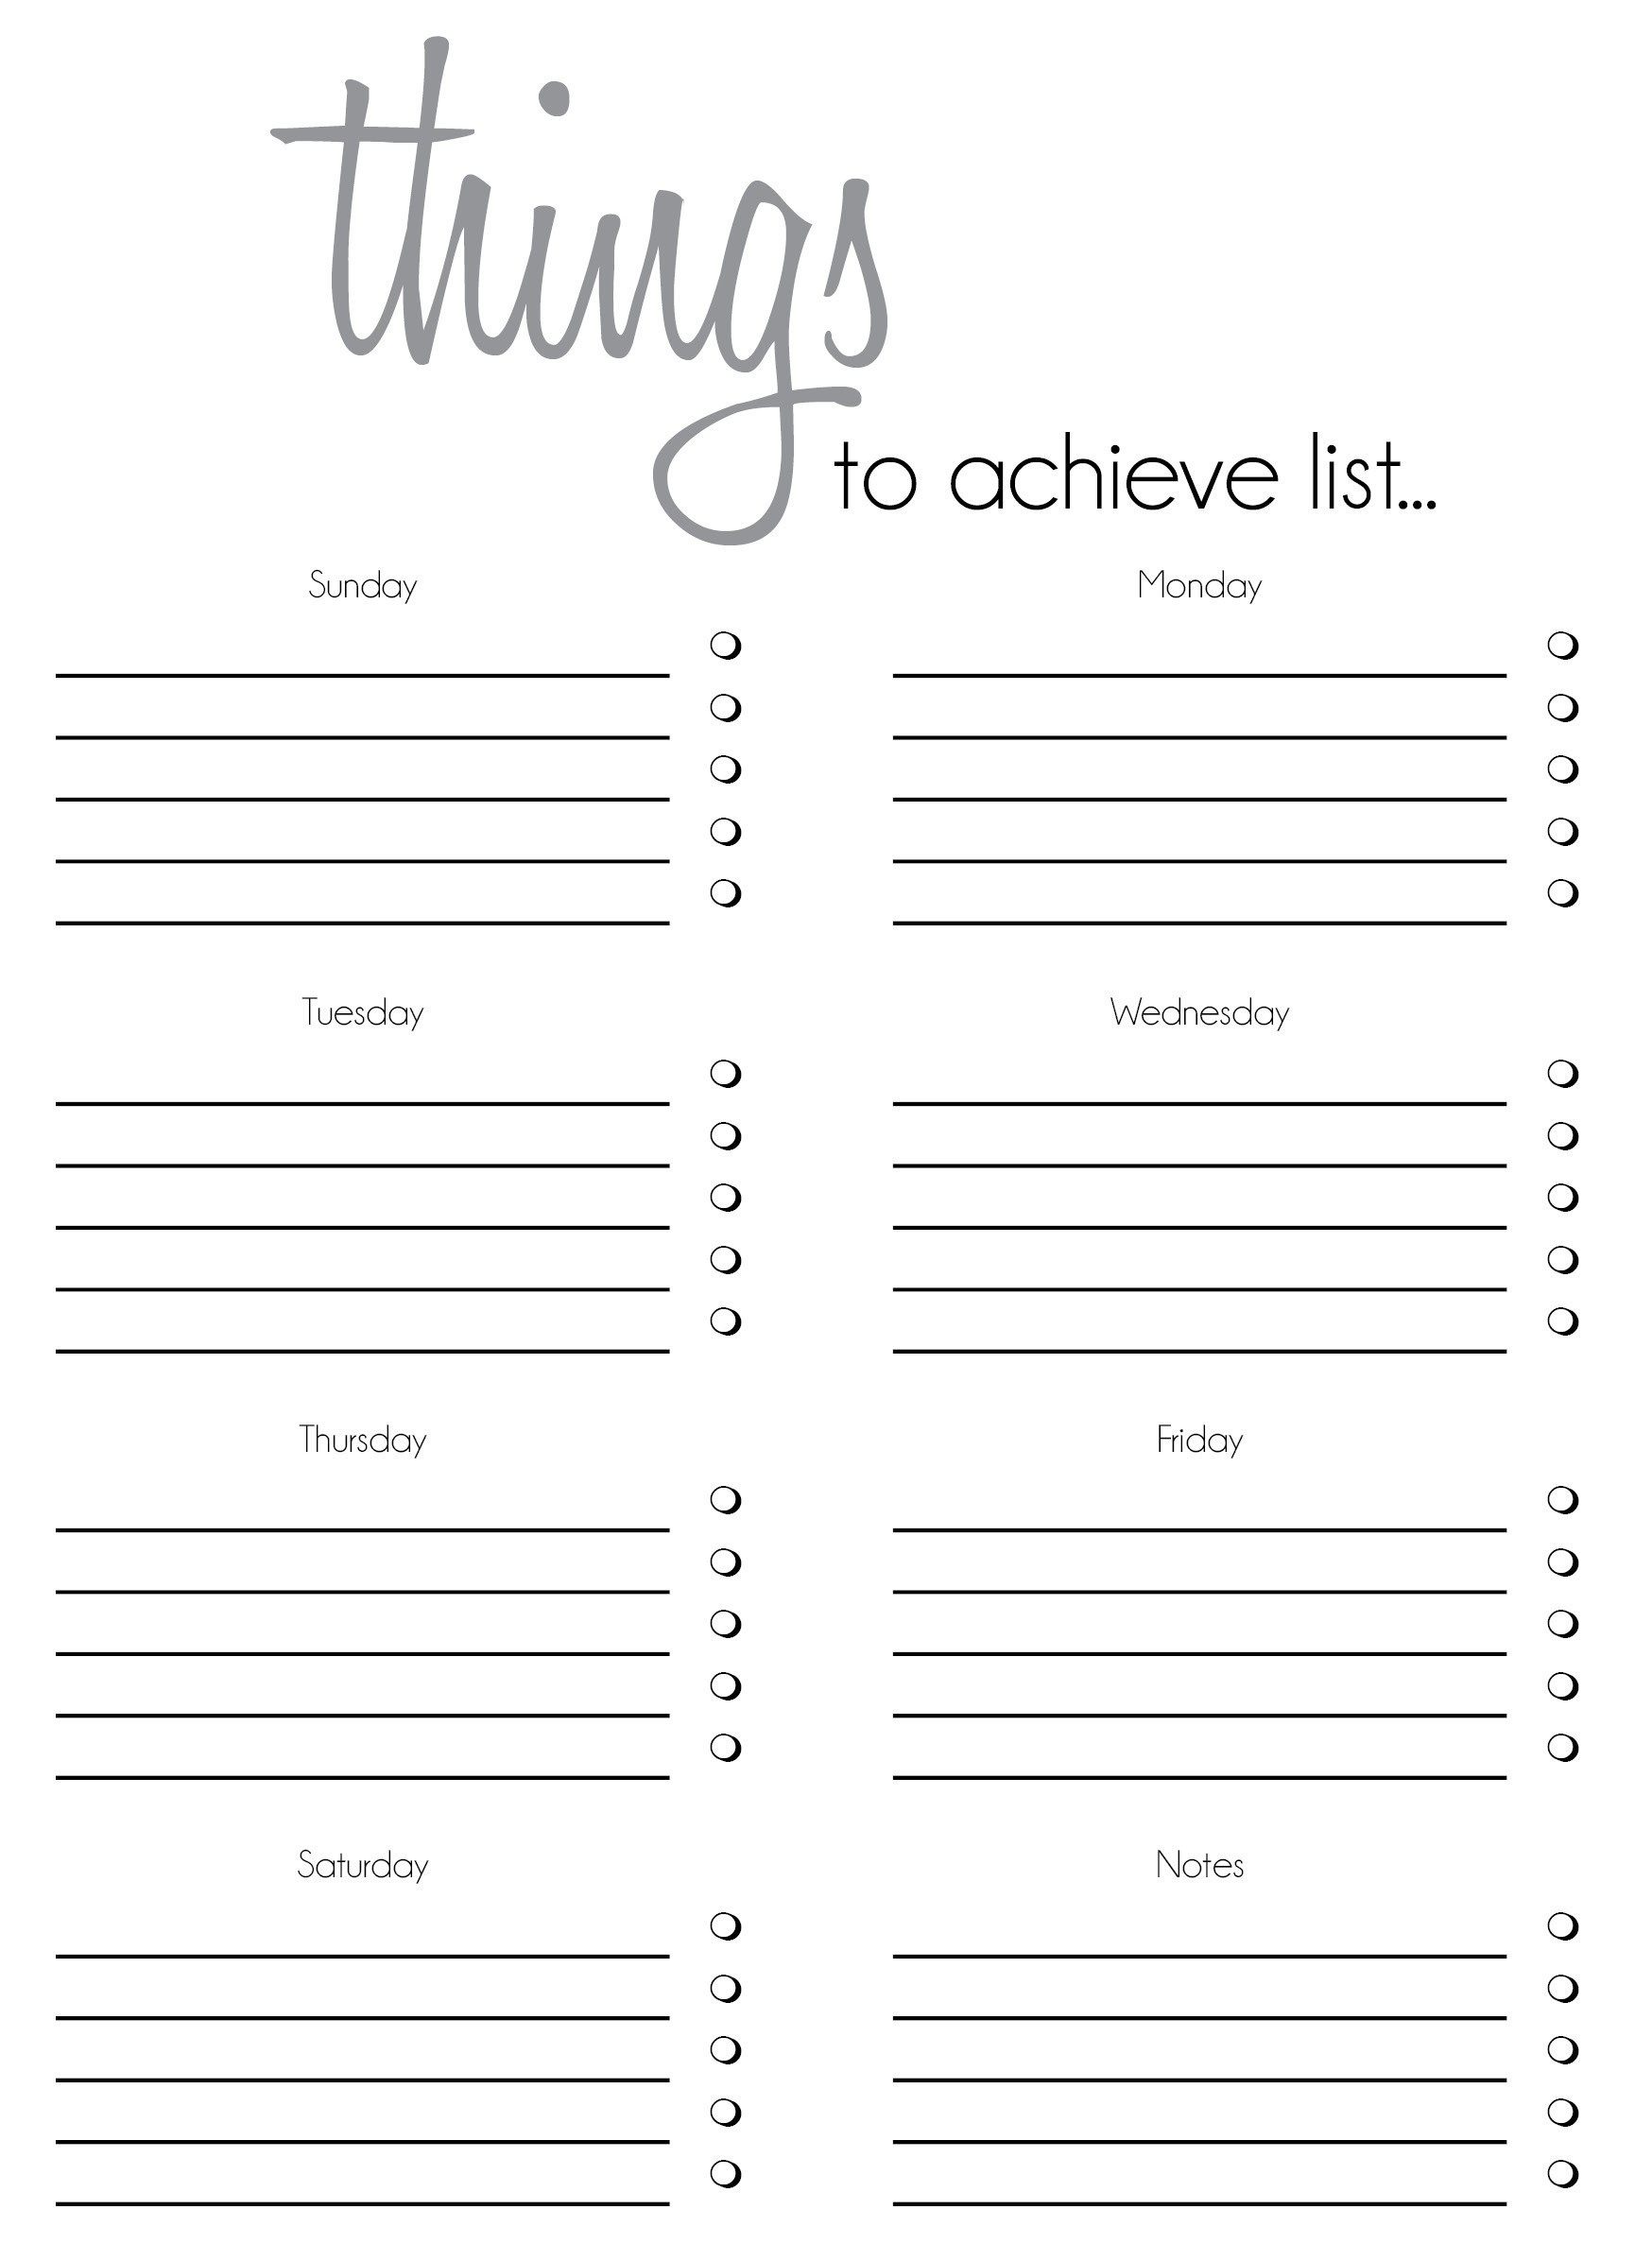 Cute Blank List Template | World Of Example throughout Cute Blank List Template 20408